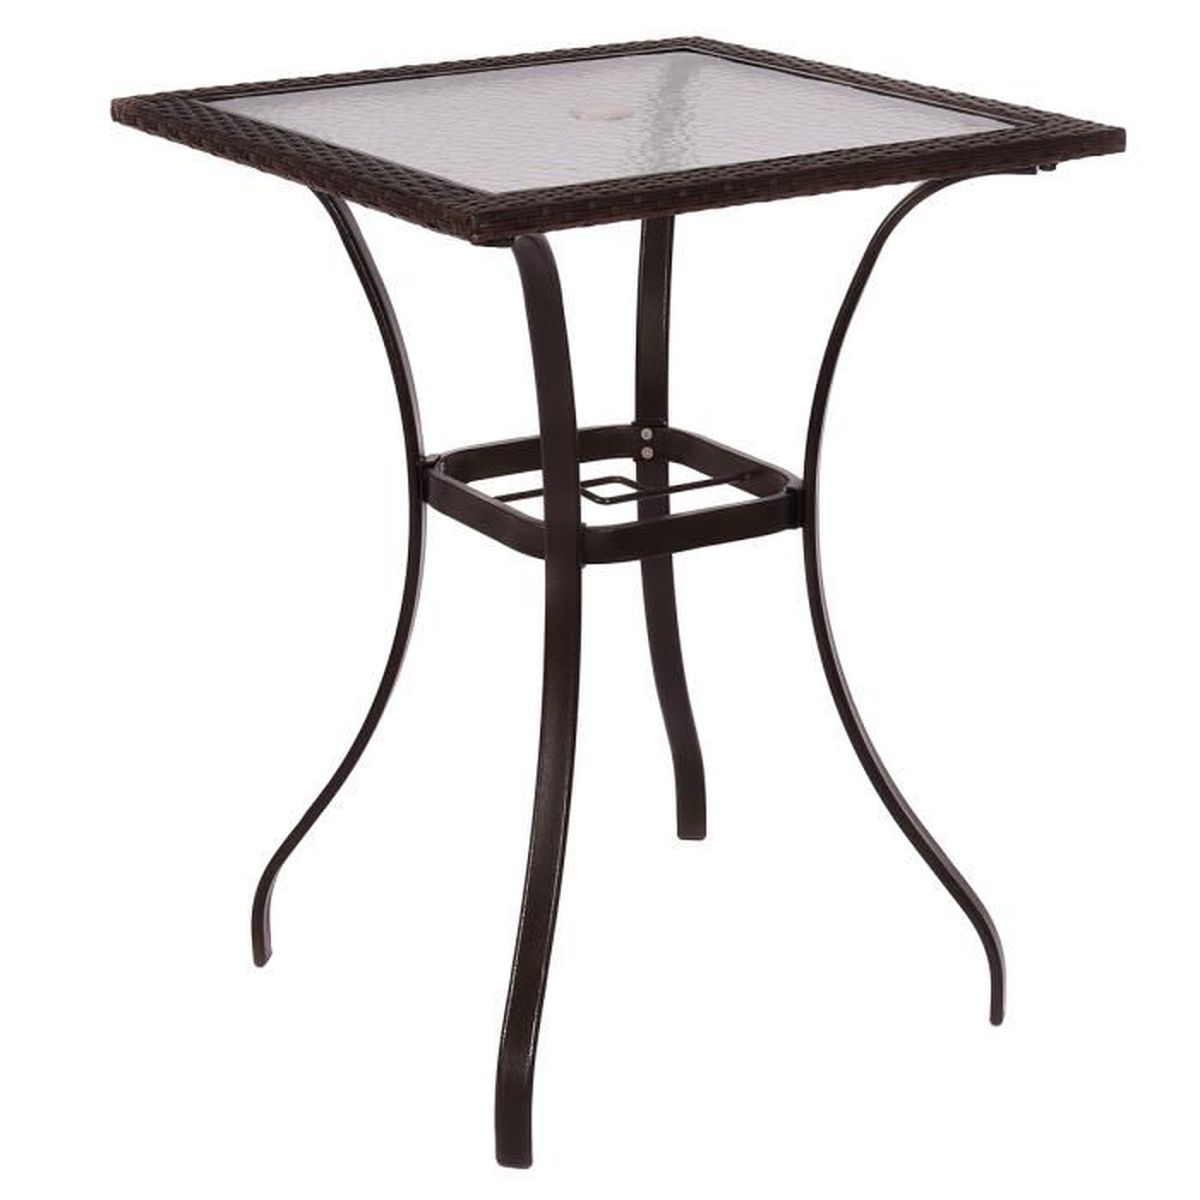 tables meubles poly rotin de jardin achat vente table de jardin tables meubles poly rotin d. Black Bedroom Furniture Sets. Home Design Ideas